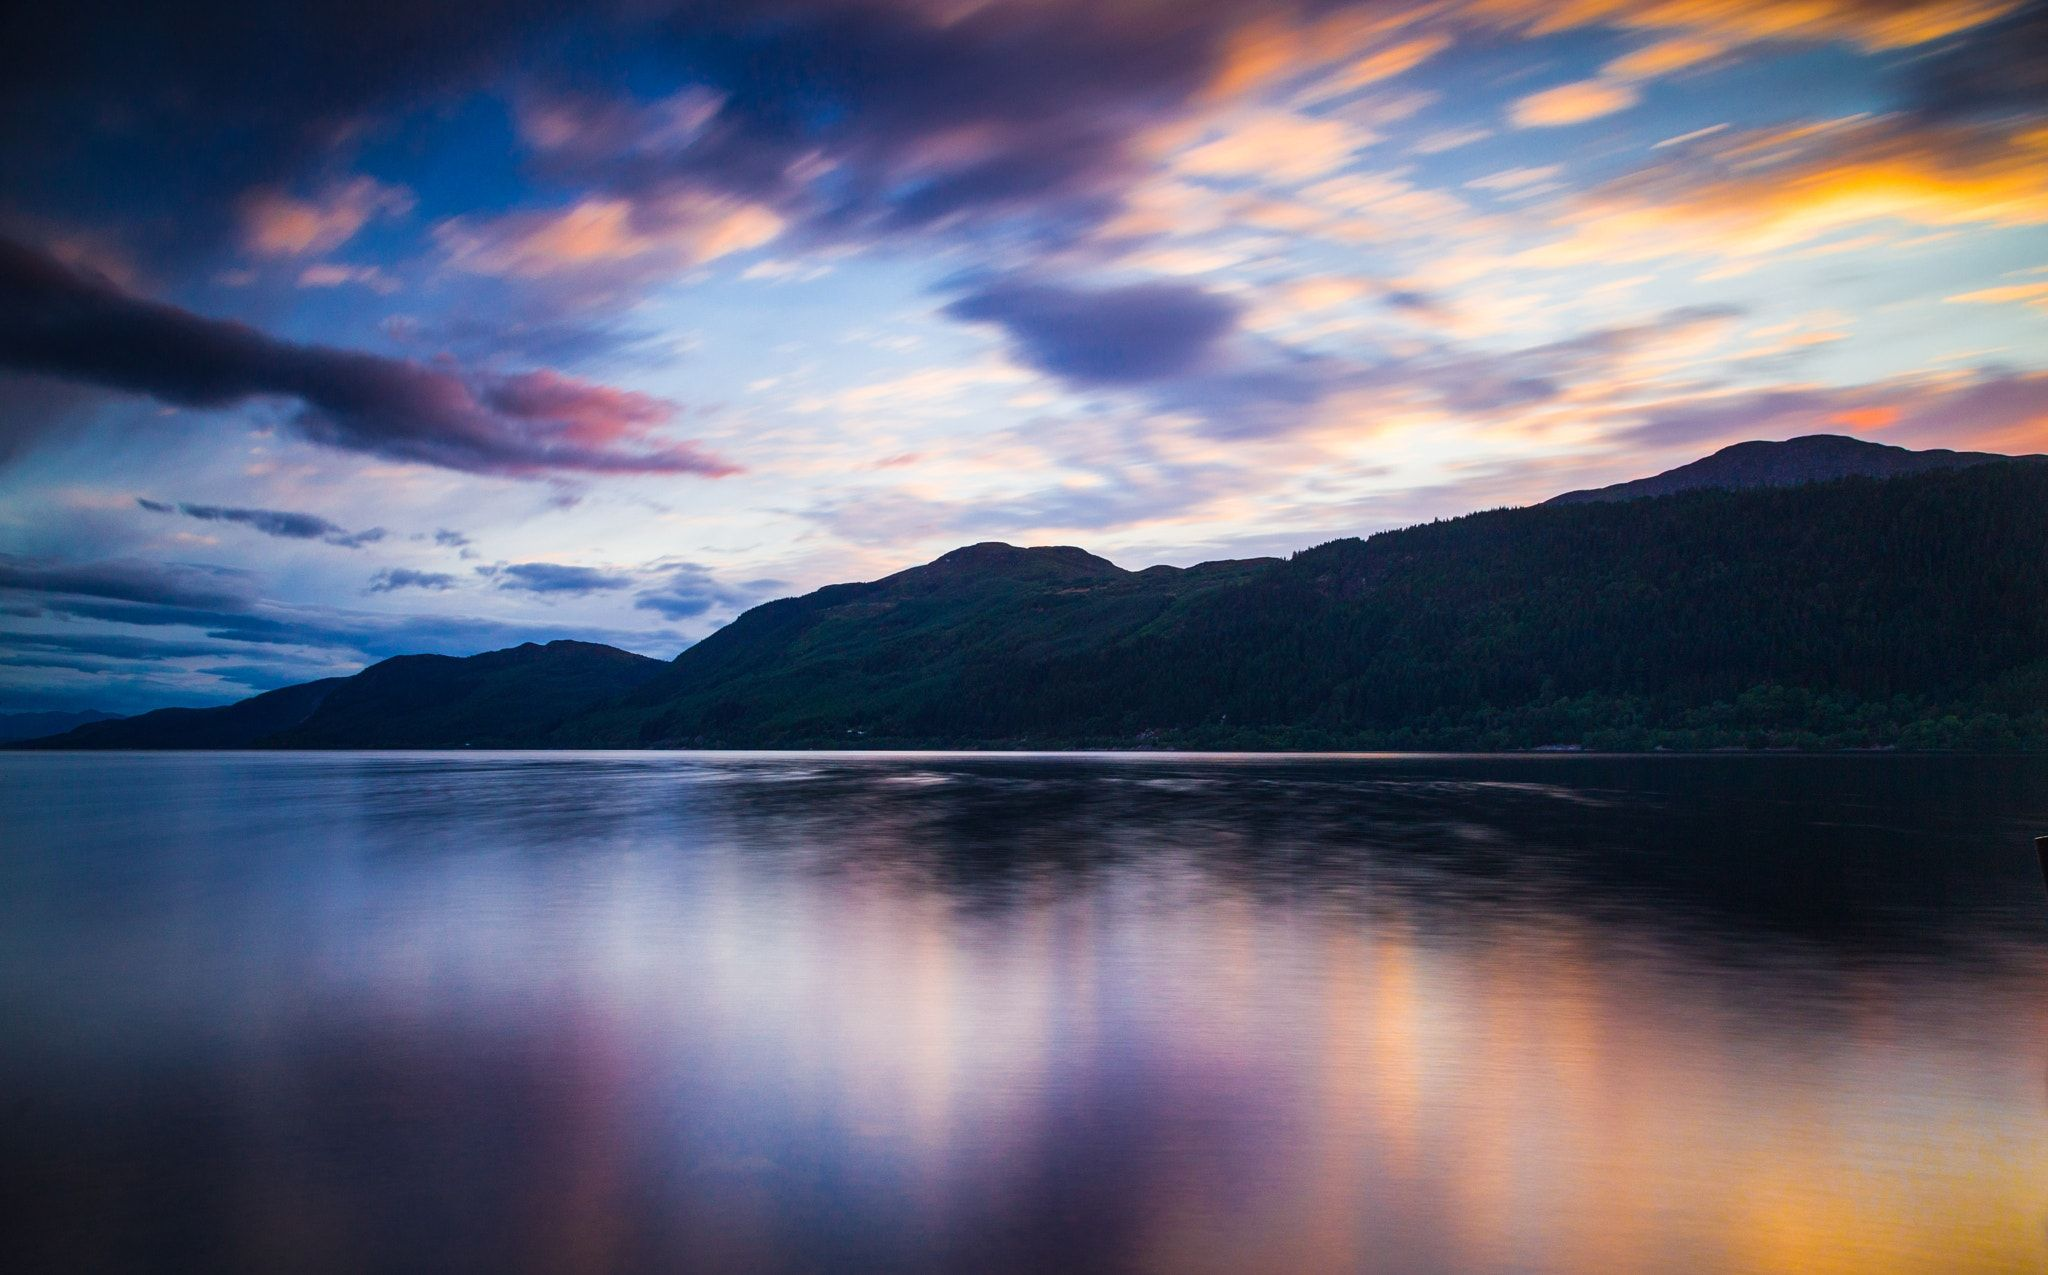 Loch Ness Sunset - This shot was taken during an unbelievable sunset at Loch Ness, while tons of midges were eating me!